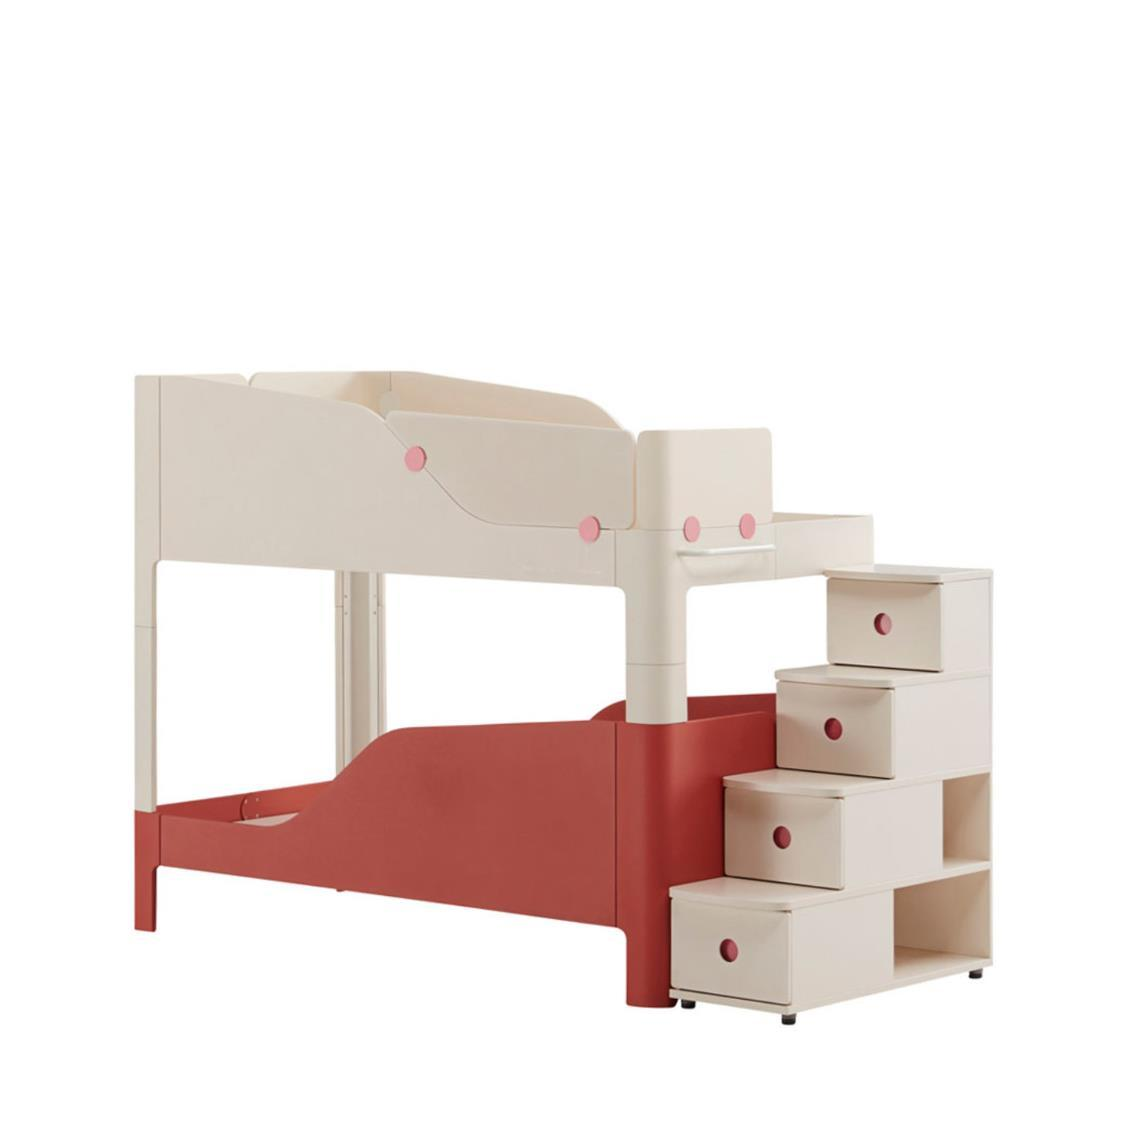 Tinkle Pop 2 Story Bed Stairs IVKR Ivory Red